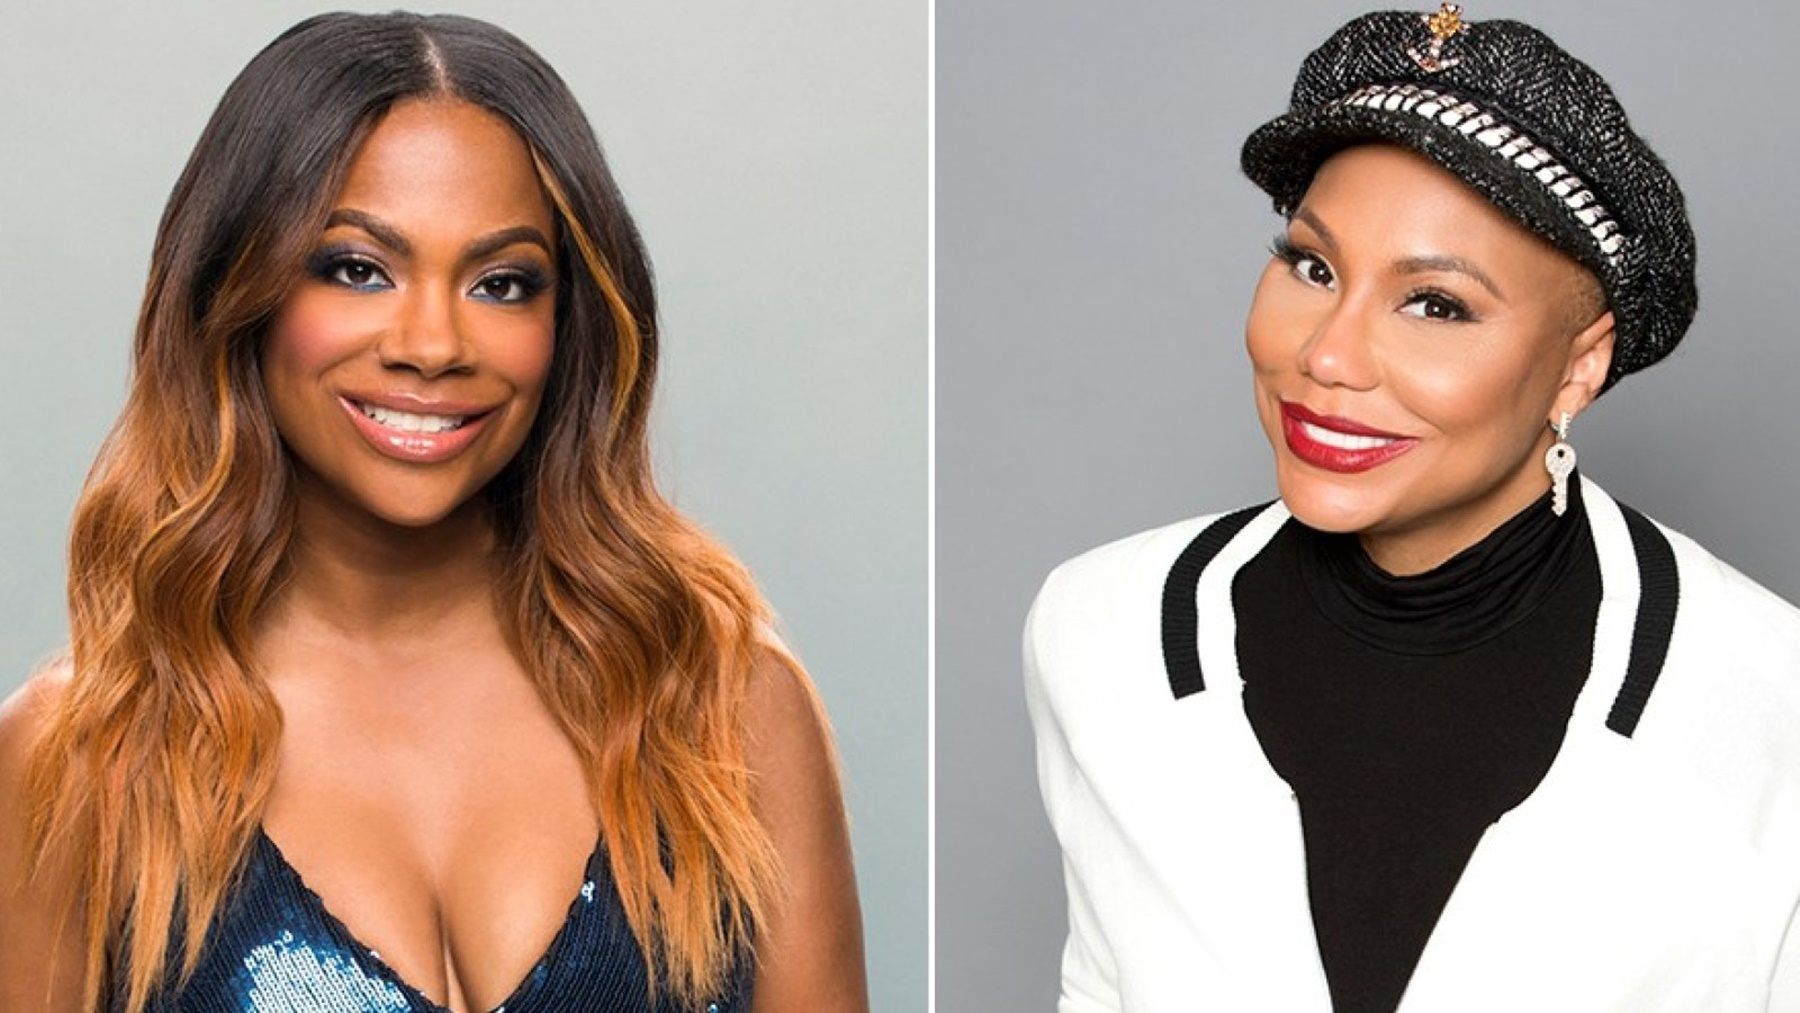 """tamar-braxton-says-she-is-fat-using-this-picture-here-is-what-her-boyfriend-and-kandi-burruss-had-to-say-about-the-weight-gain"""